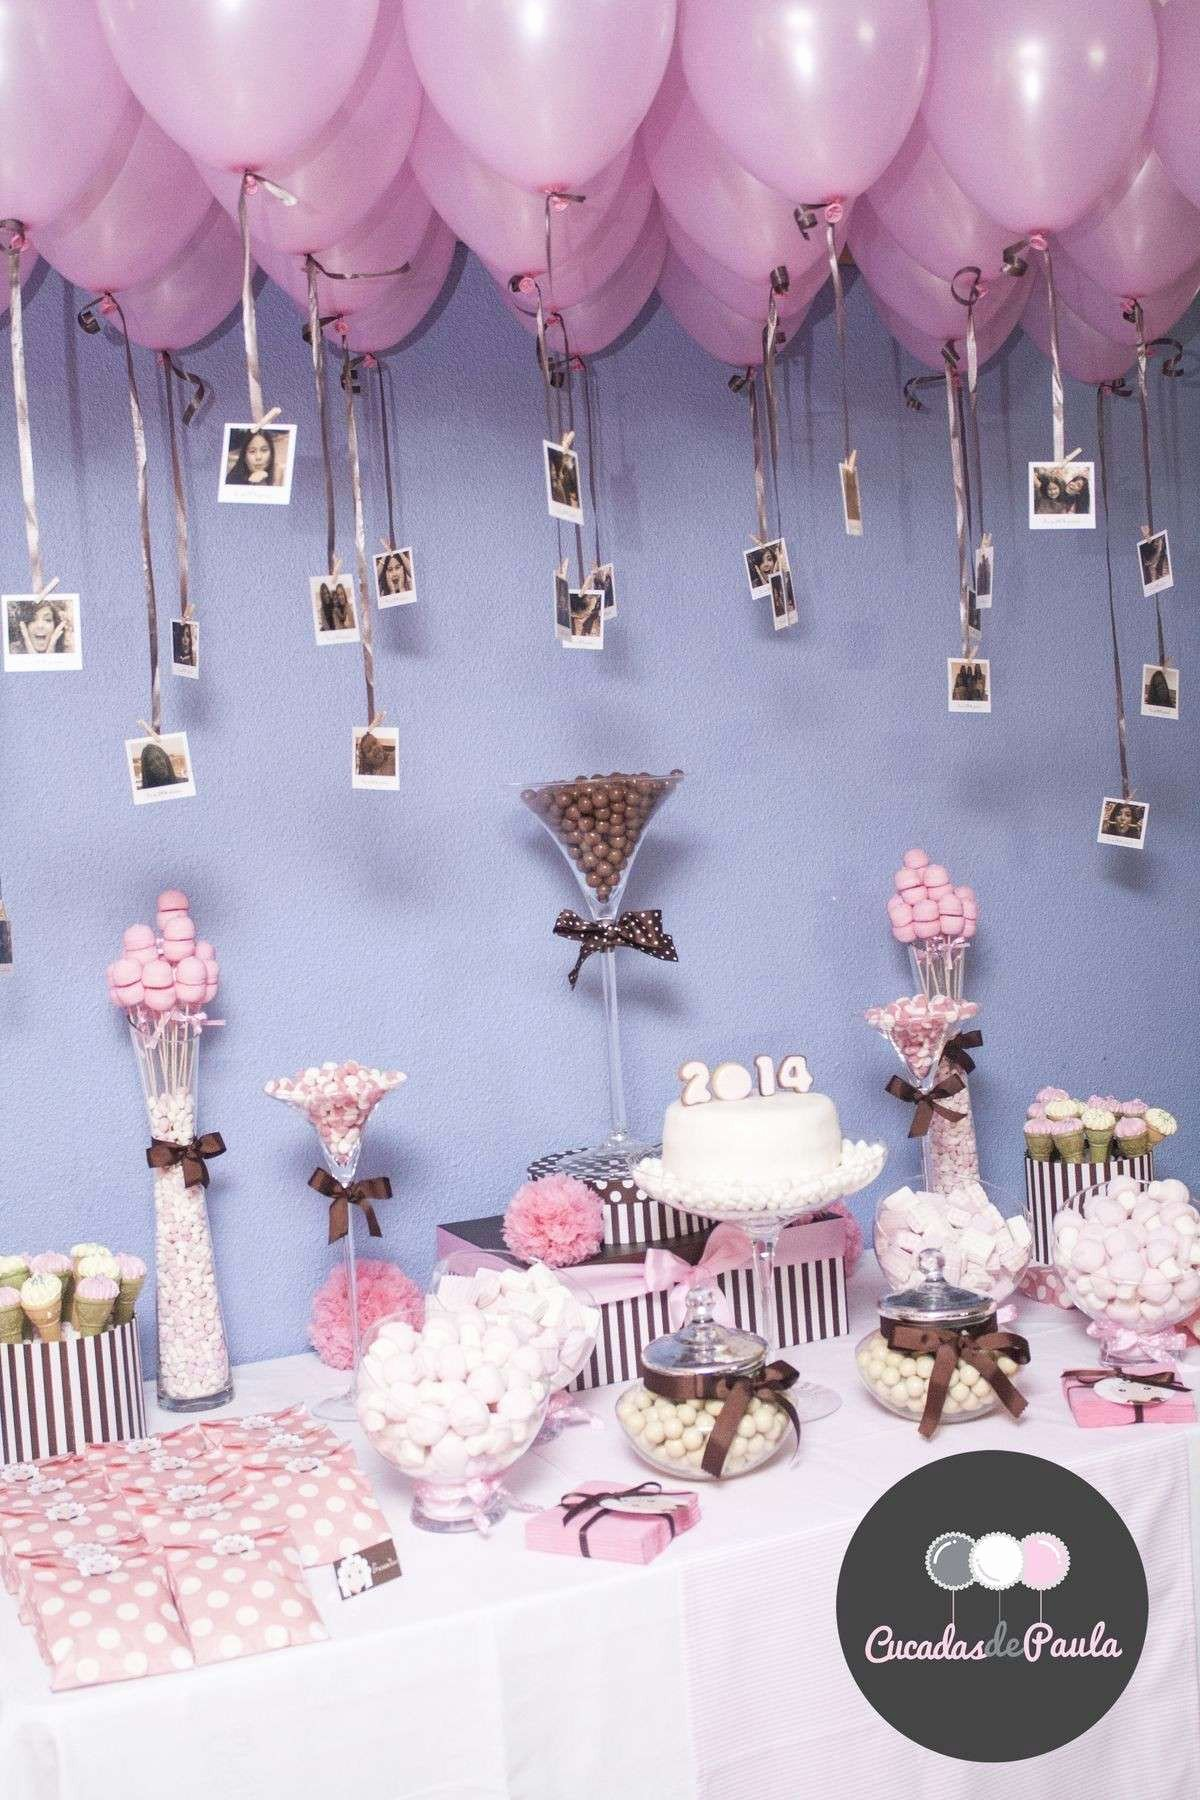 First Birthday Decoration Ideas Girl Awesome Awesome First Birthday Decoration Ideas at Home for Girl